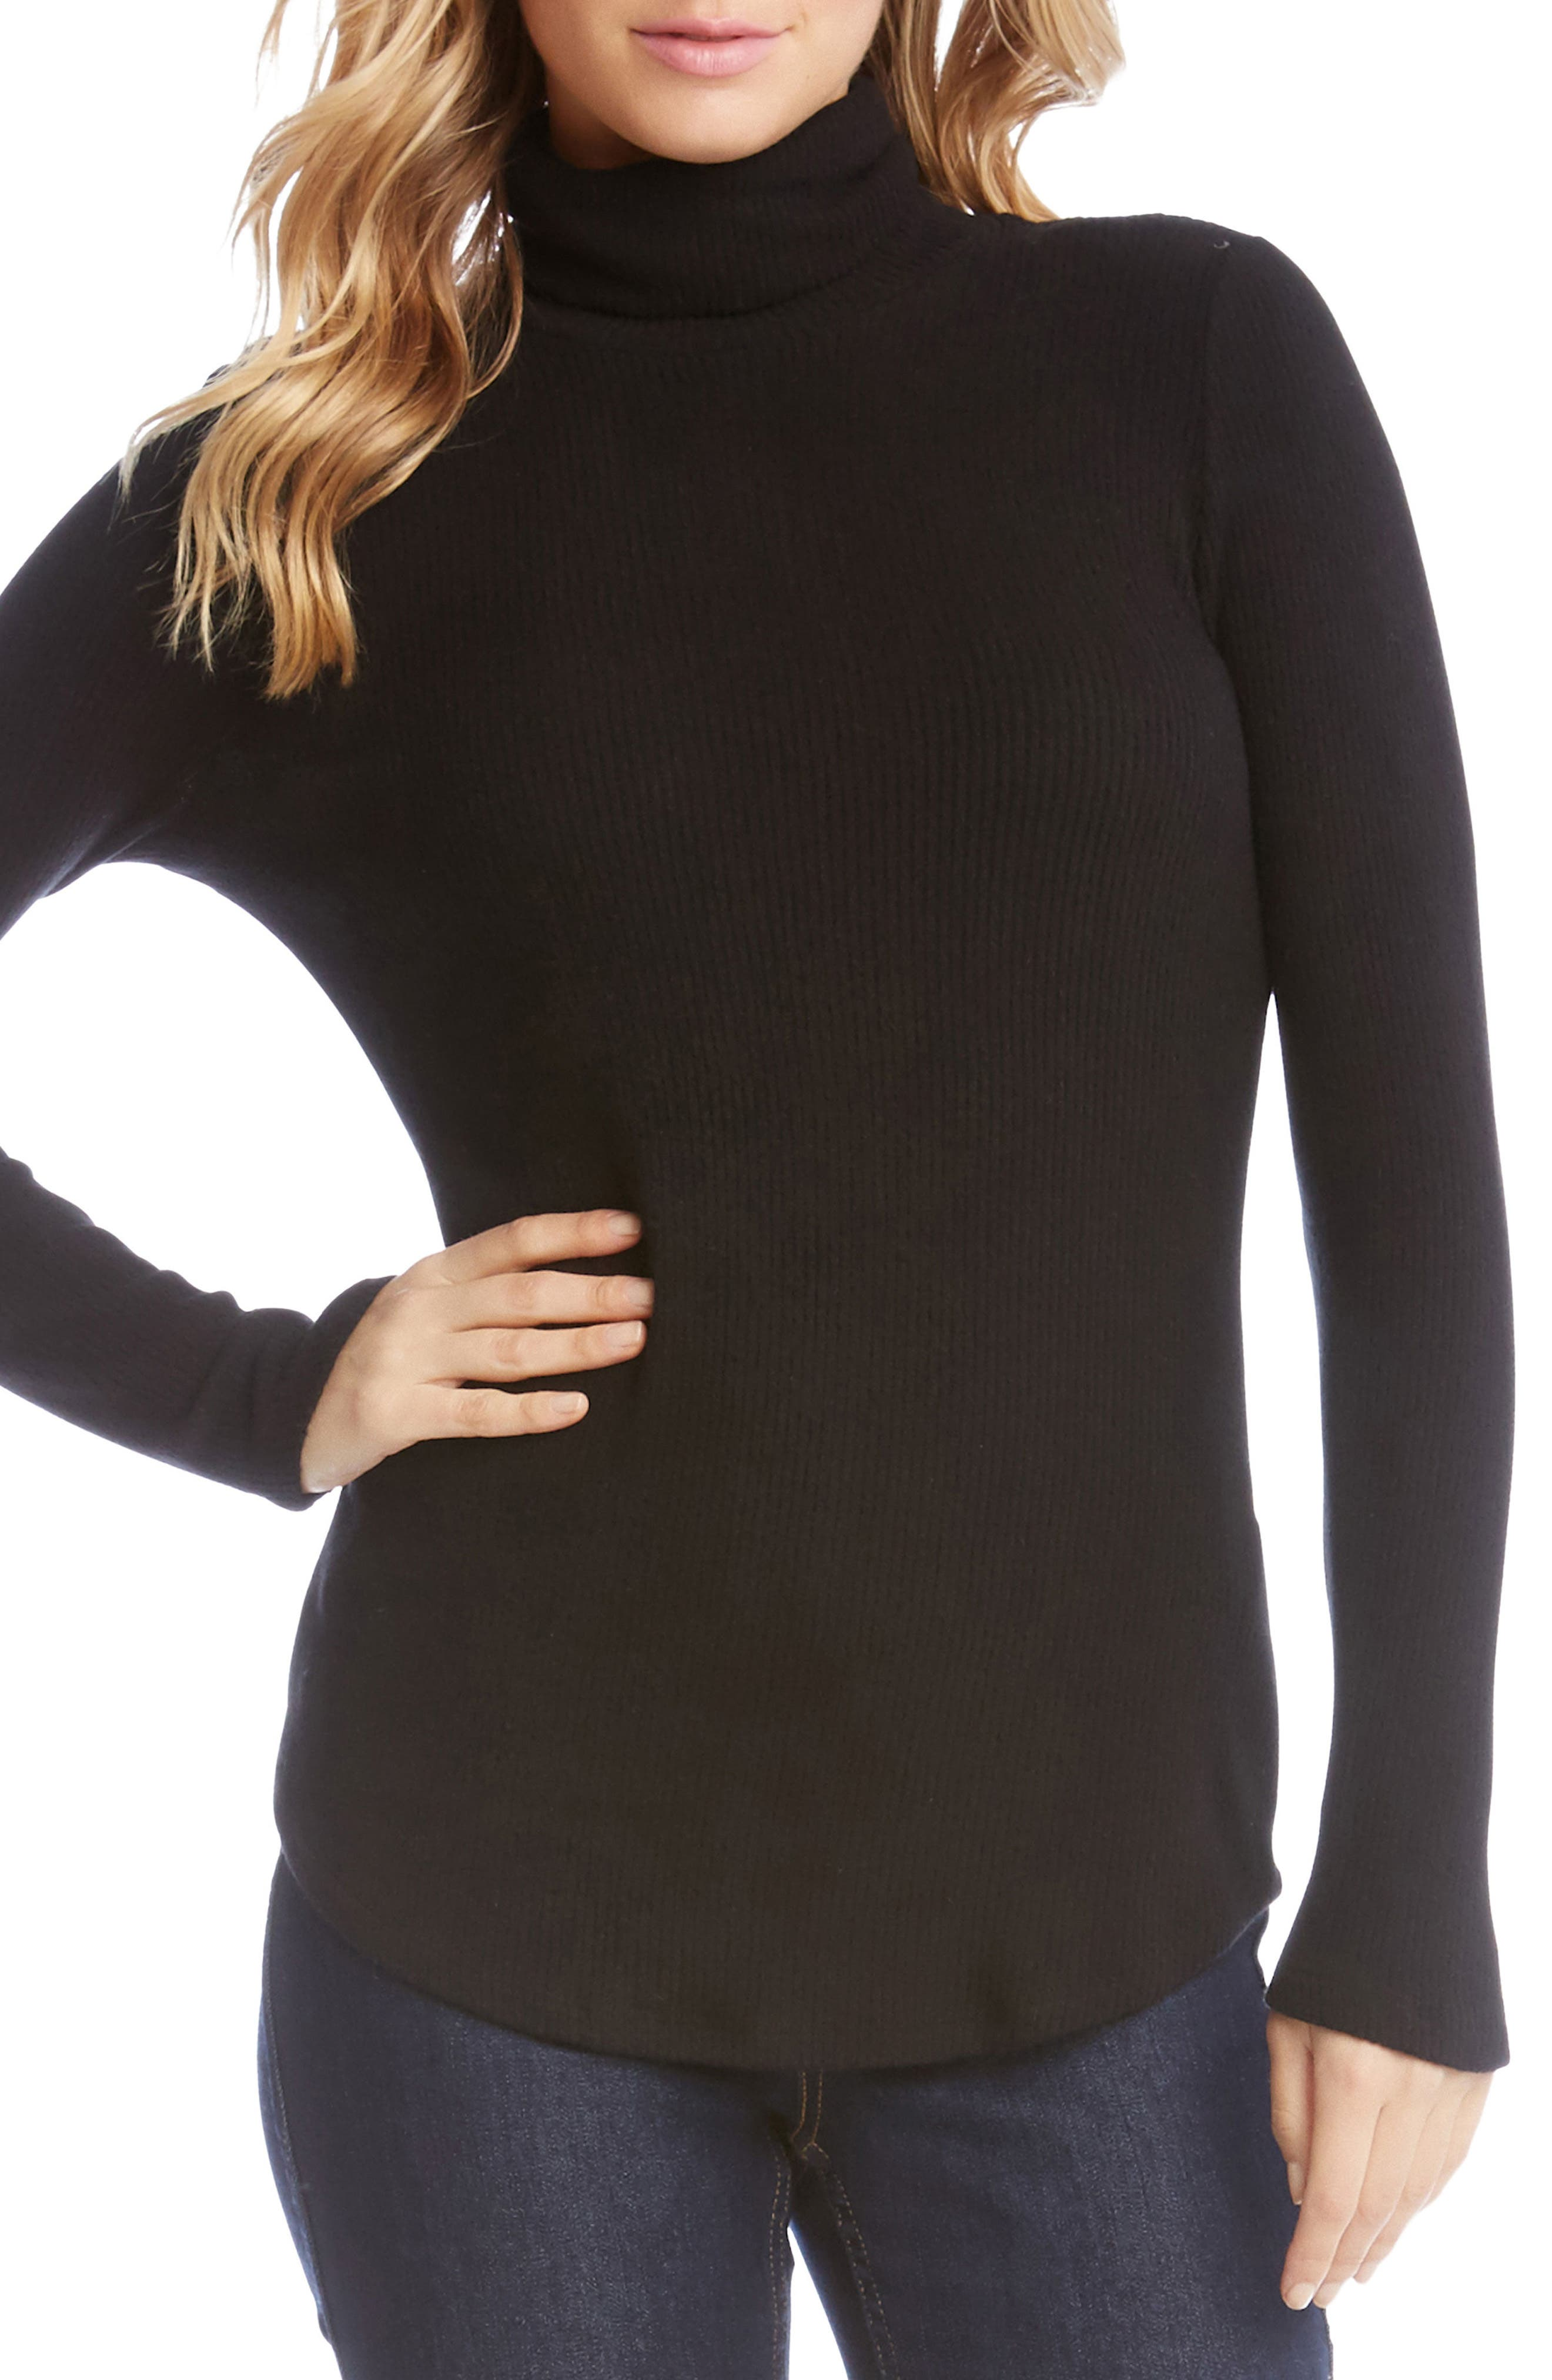 Main Image - Karen Kane Angled Sleeve Turtleneck